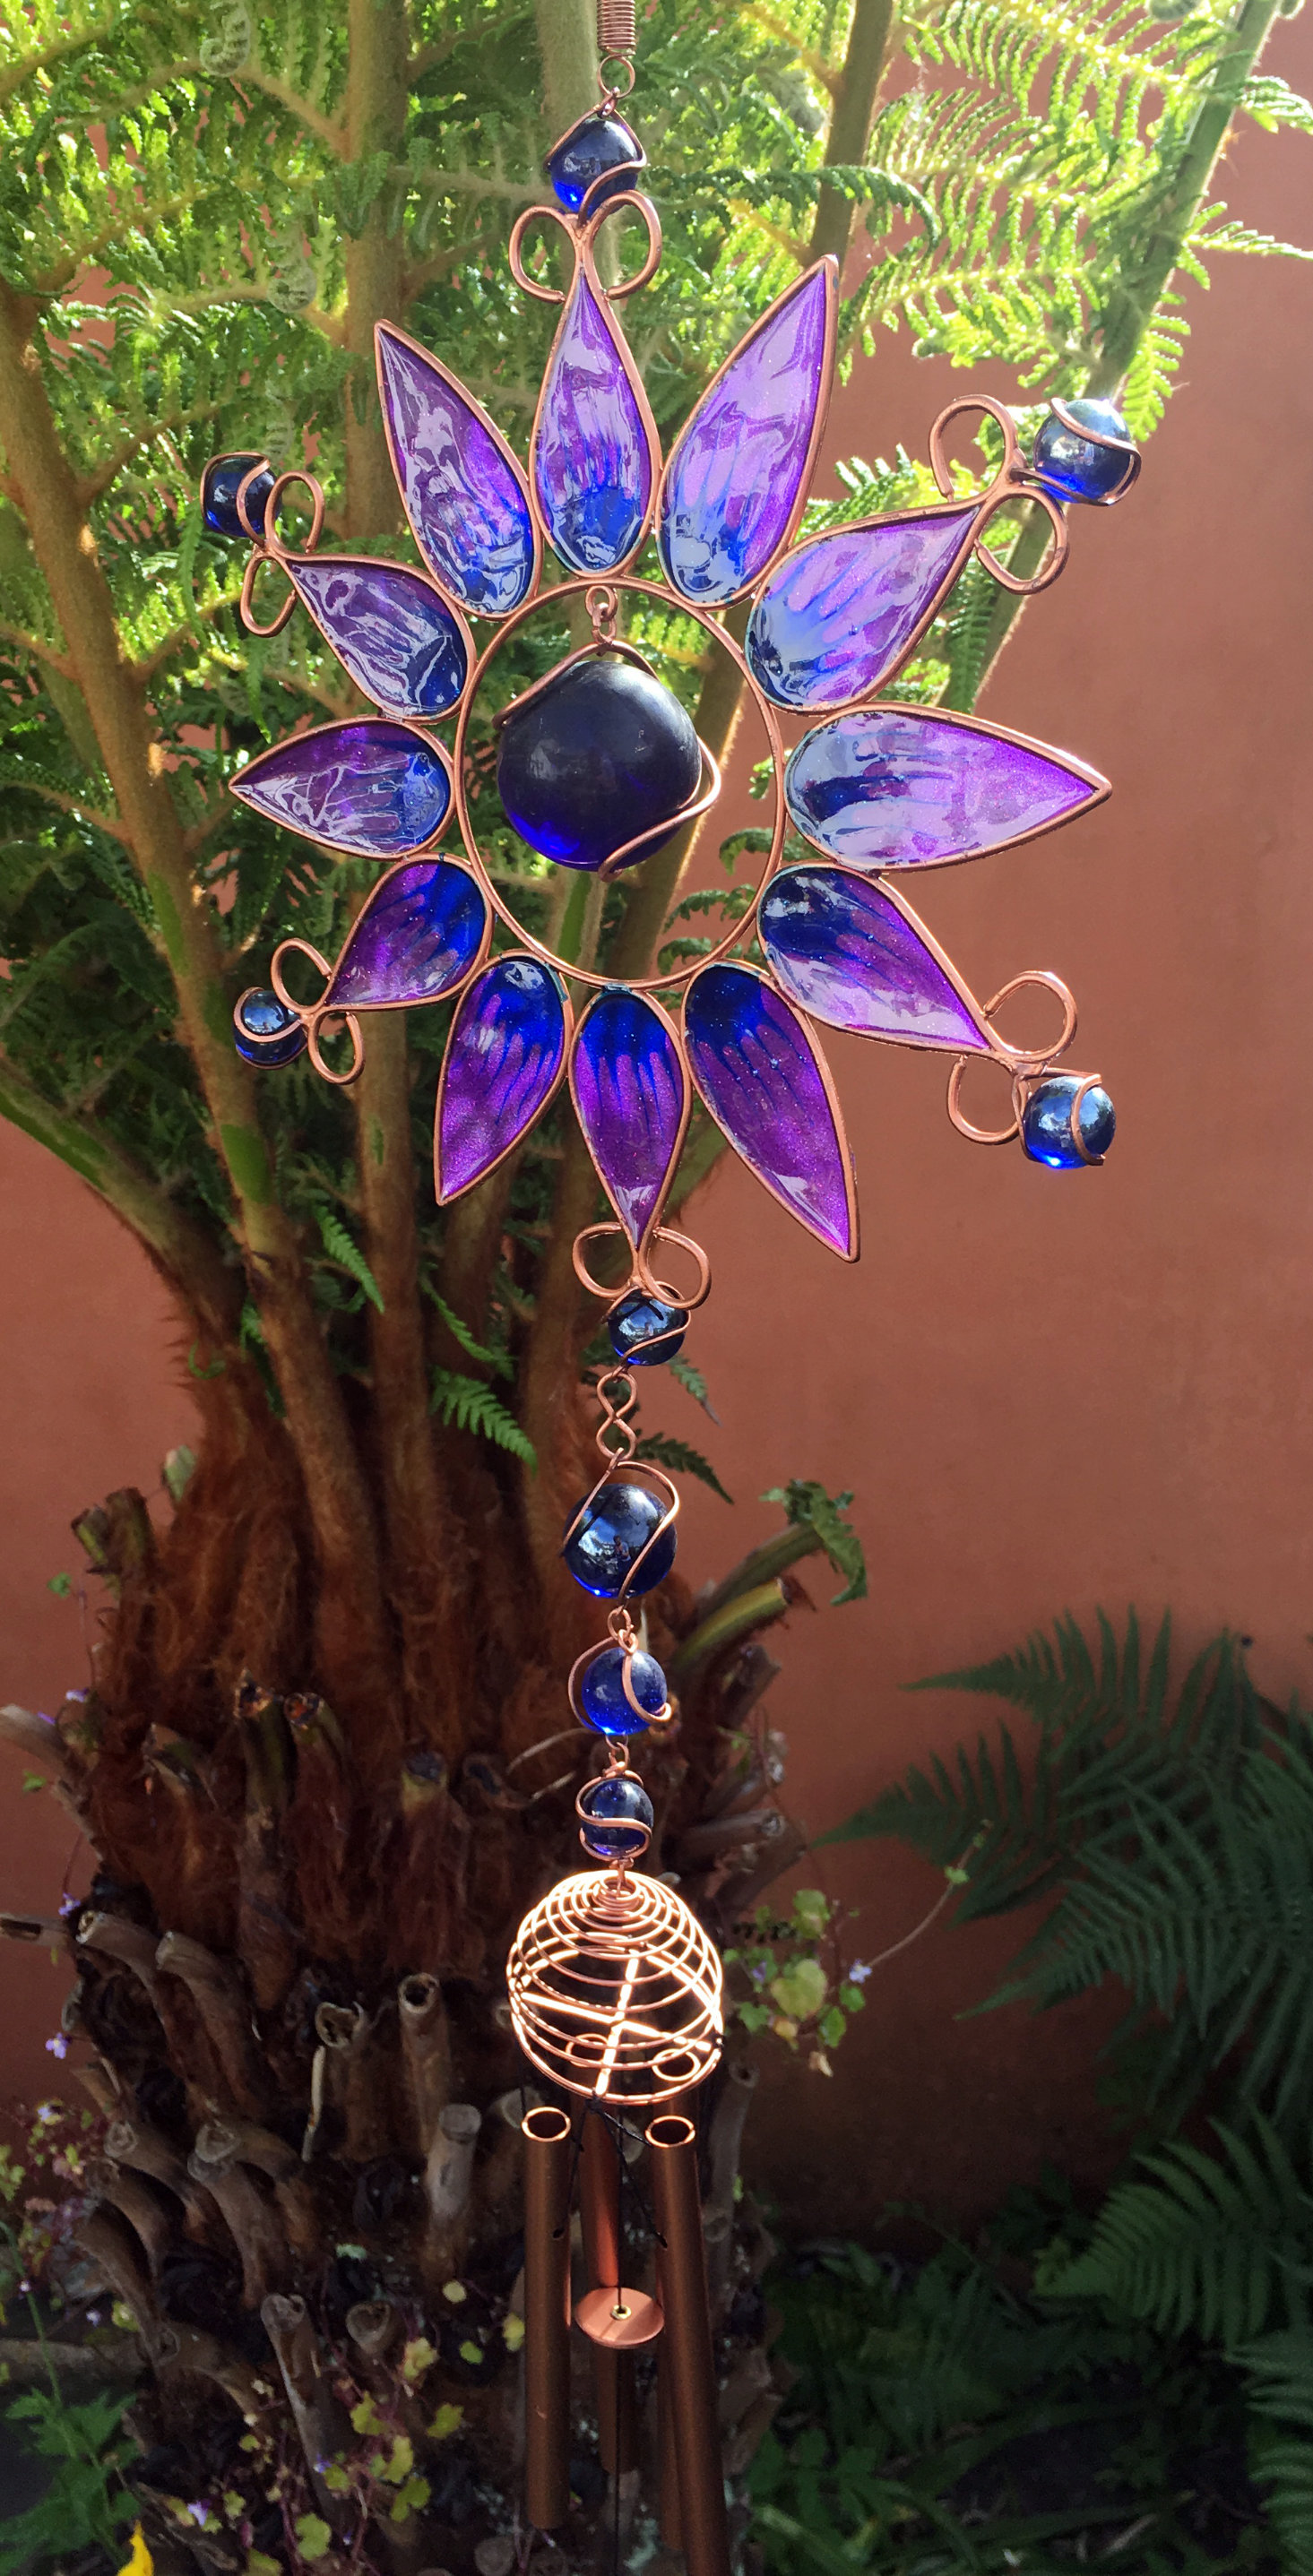 Large-Metal-amp-Glass-Hanging-Sun-Catcher-Wind-Chime-Home-Garden-Decorations thumbnail 36